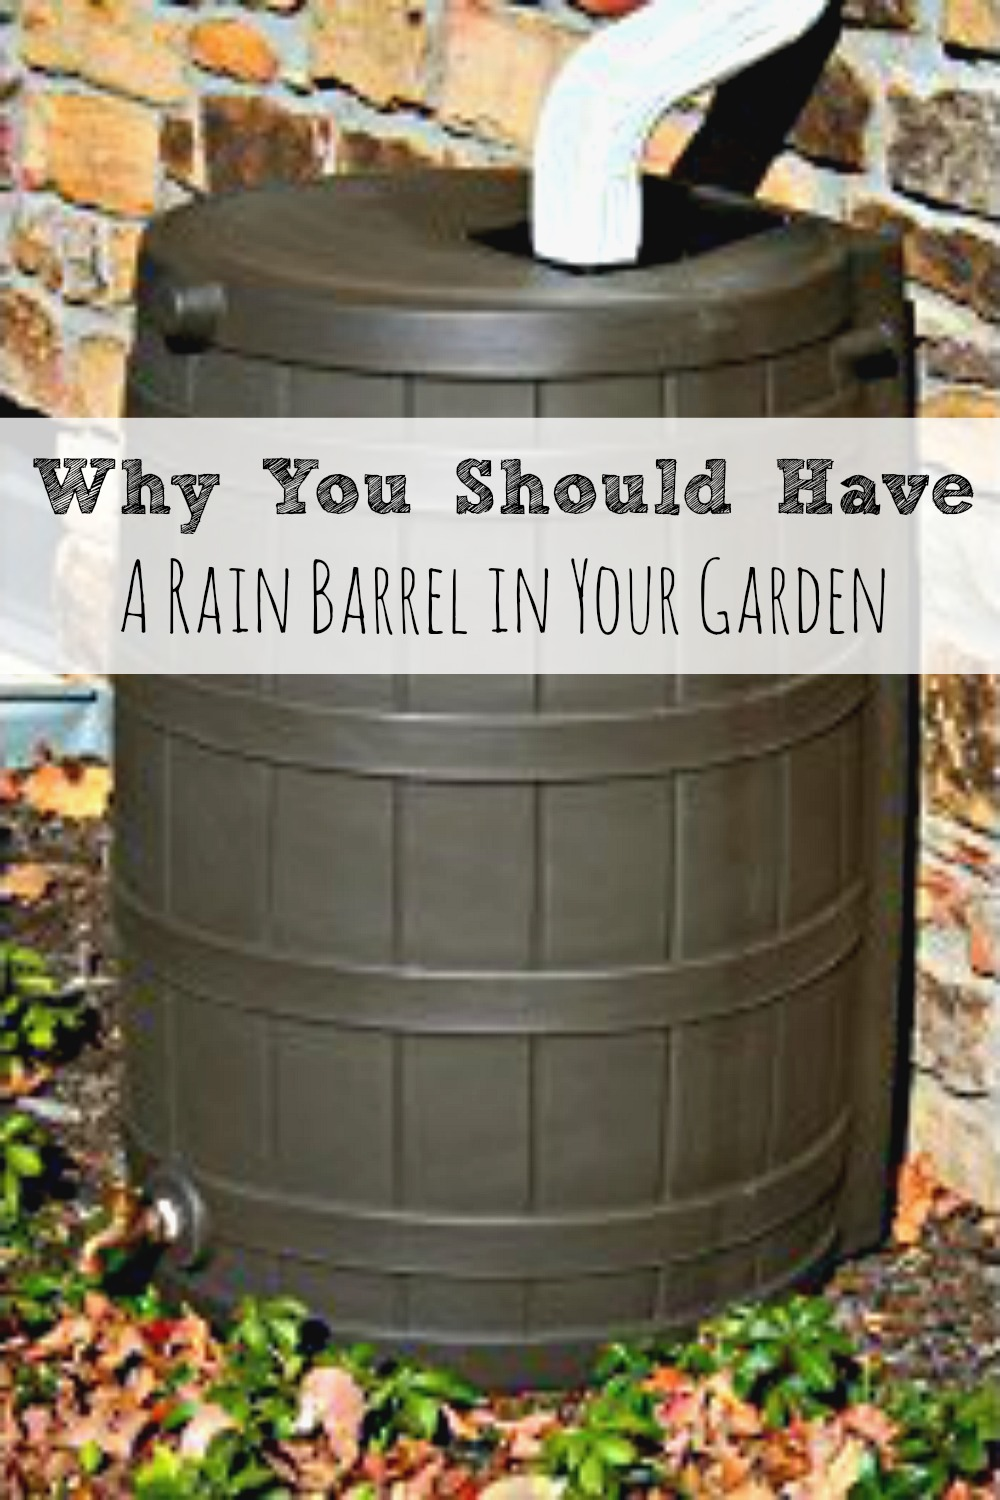 Why You Should Have a Rain Barrel in Your Garden